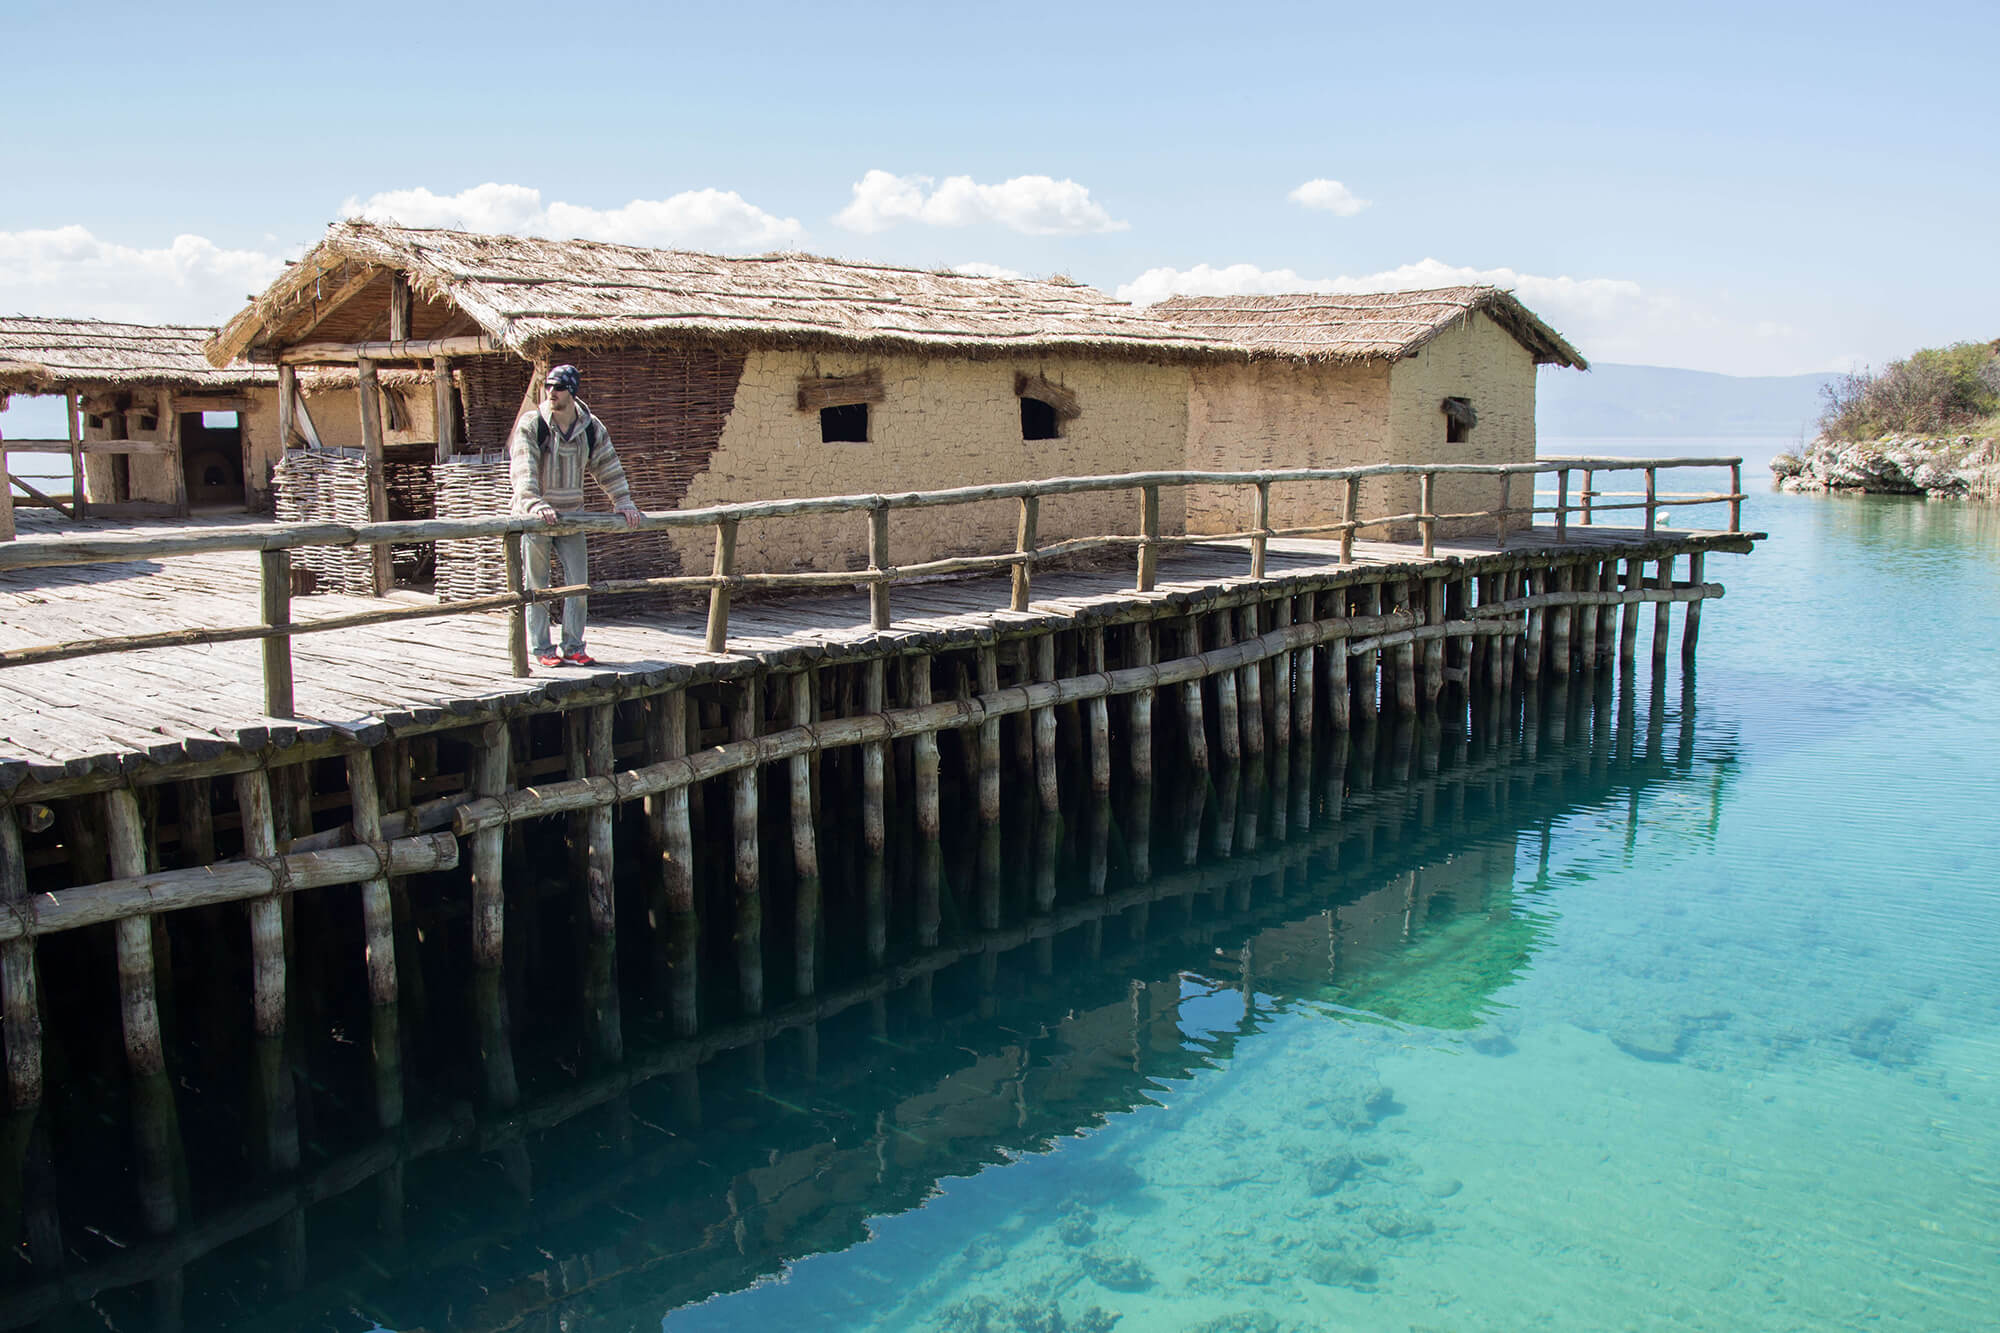 The Museum On The Crystal Clear Water Of Lake Ohrid, Macadonia